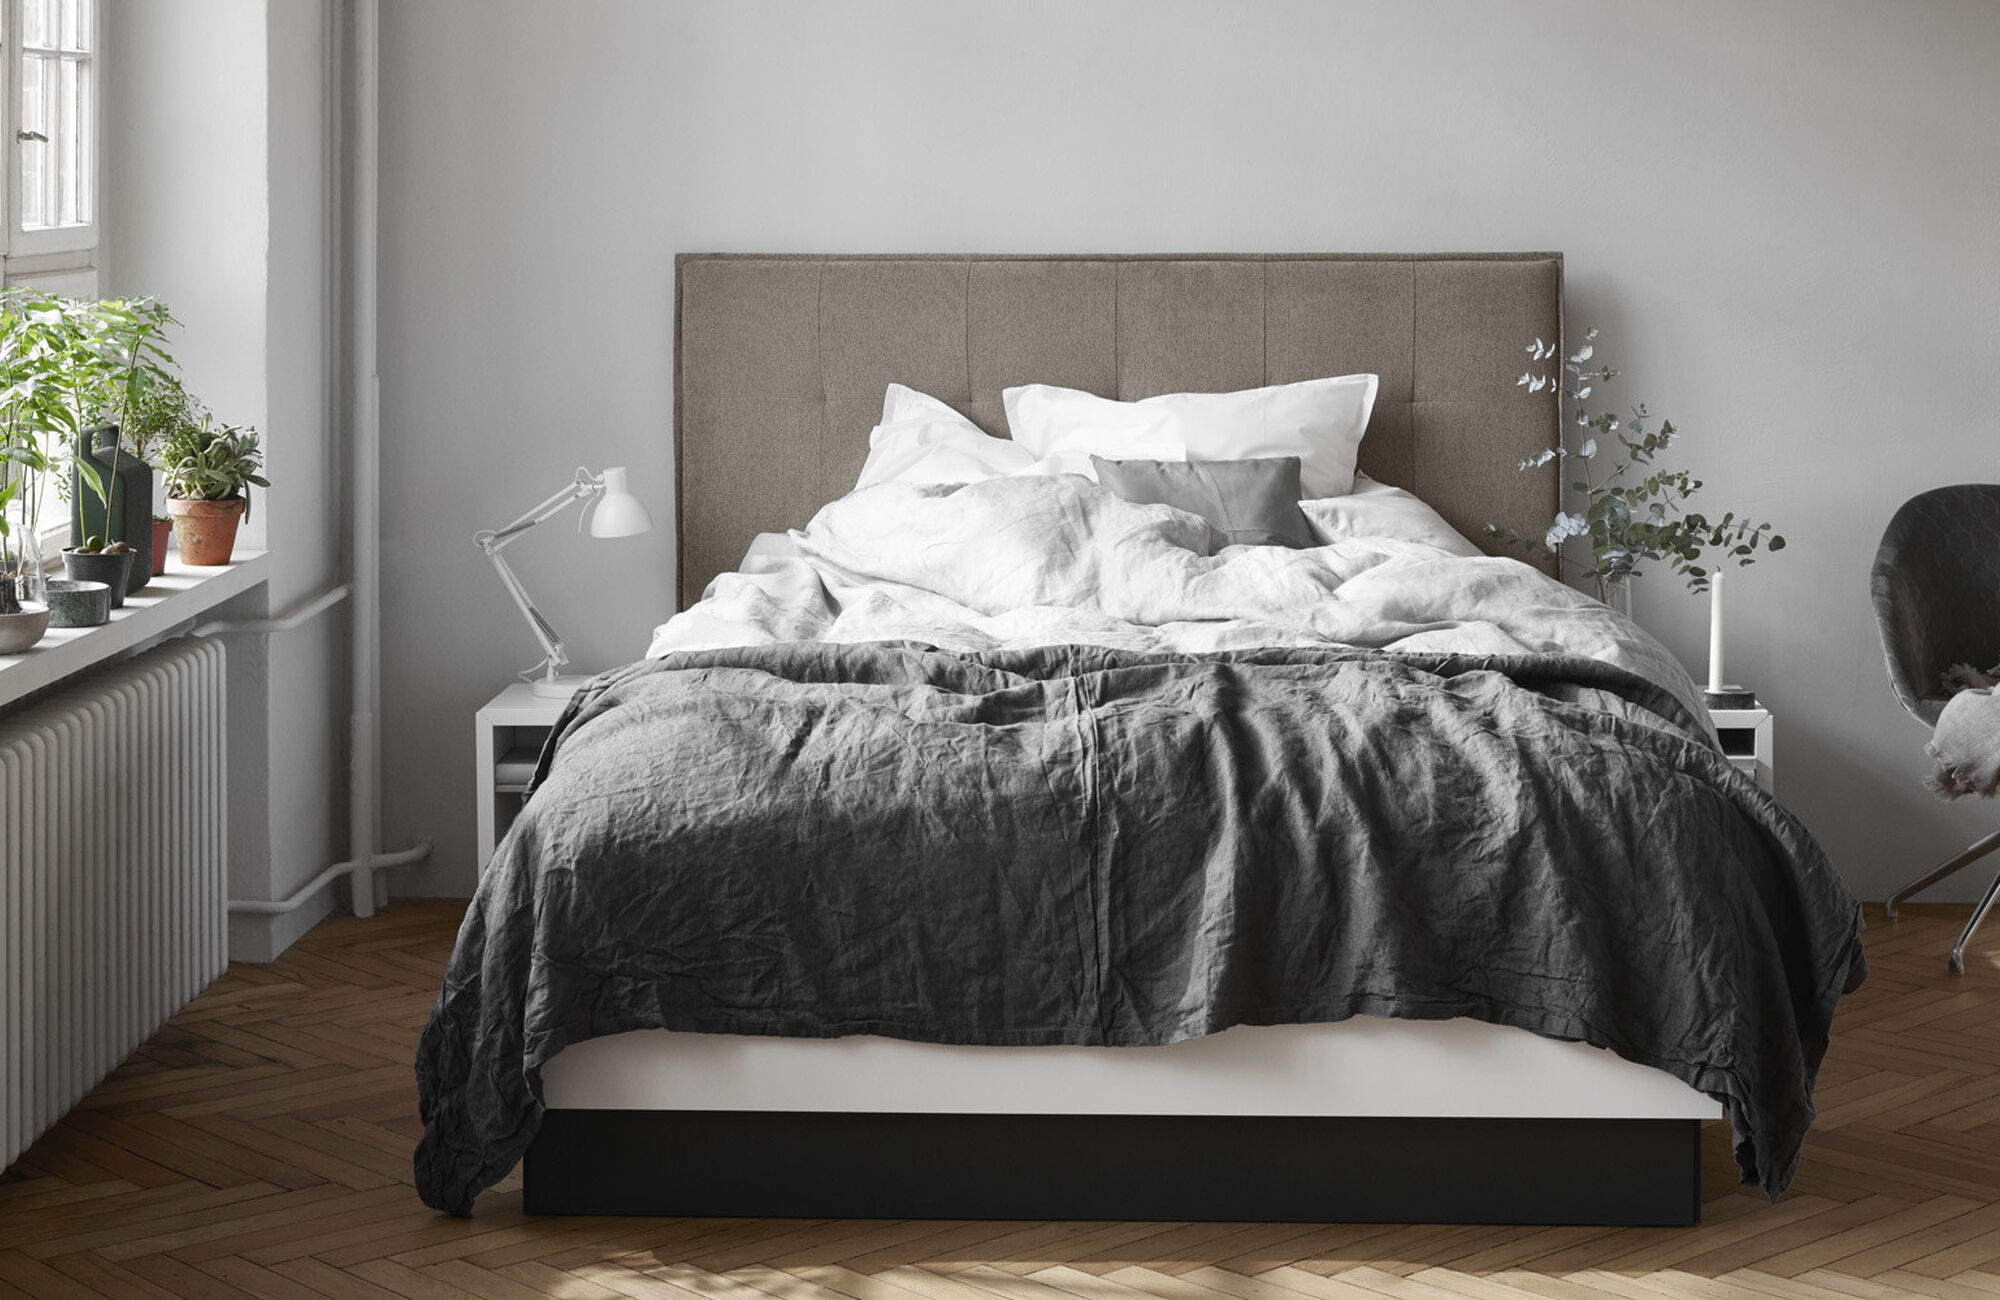 Beds - Lugano bed, excl. mattress